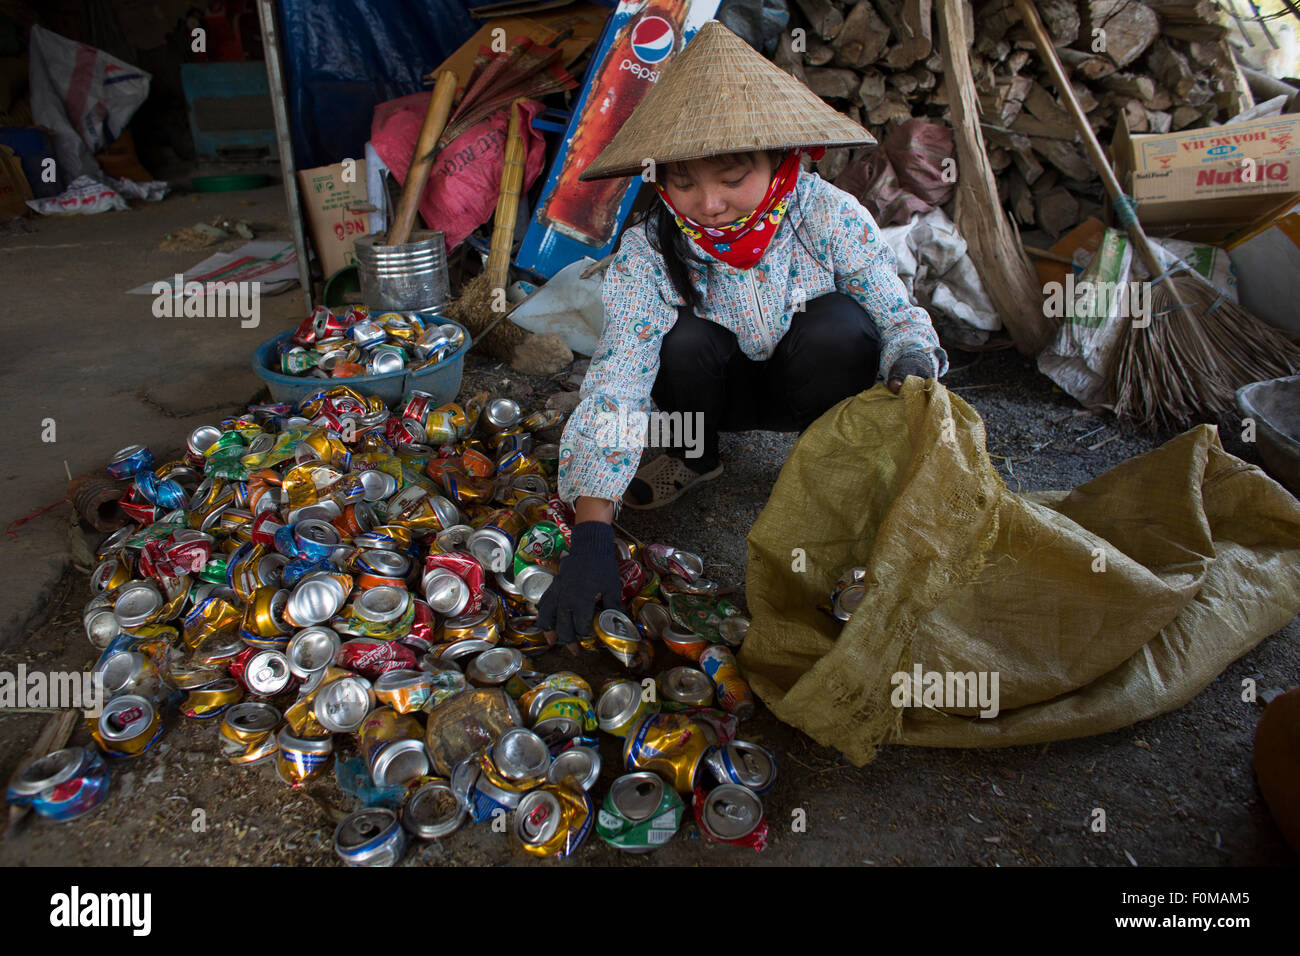 recycling of waste in Hanoi, Vietnam - Stock Image